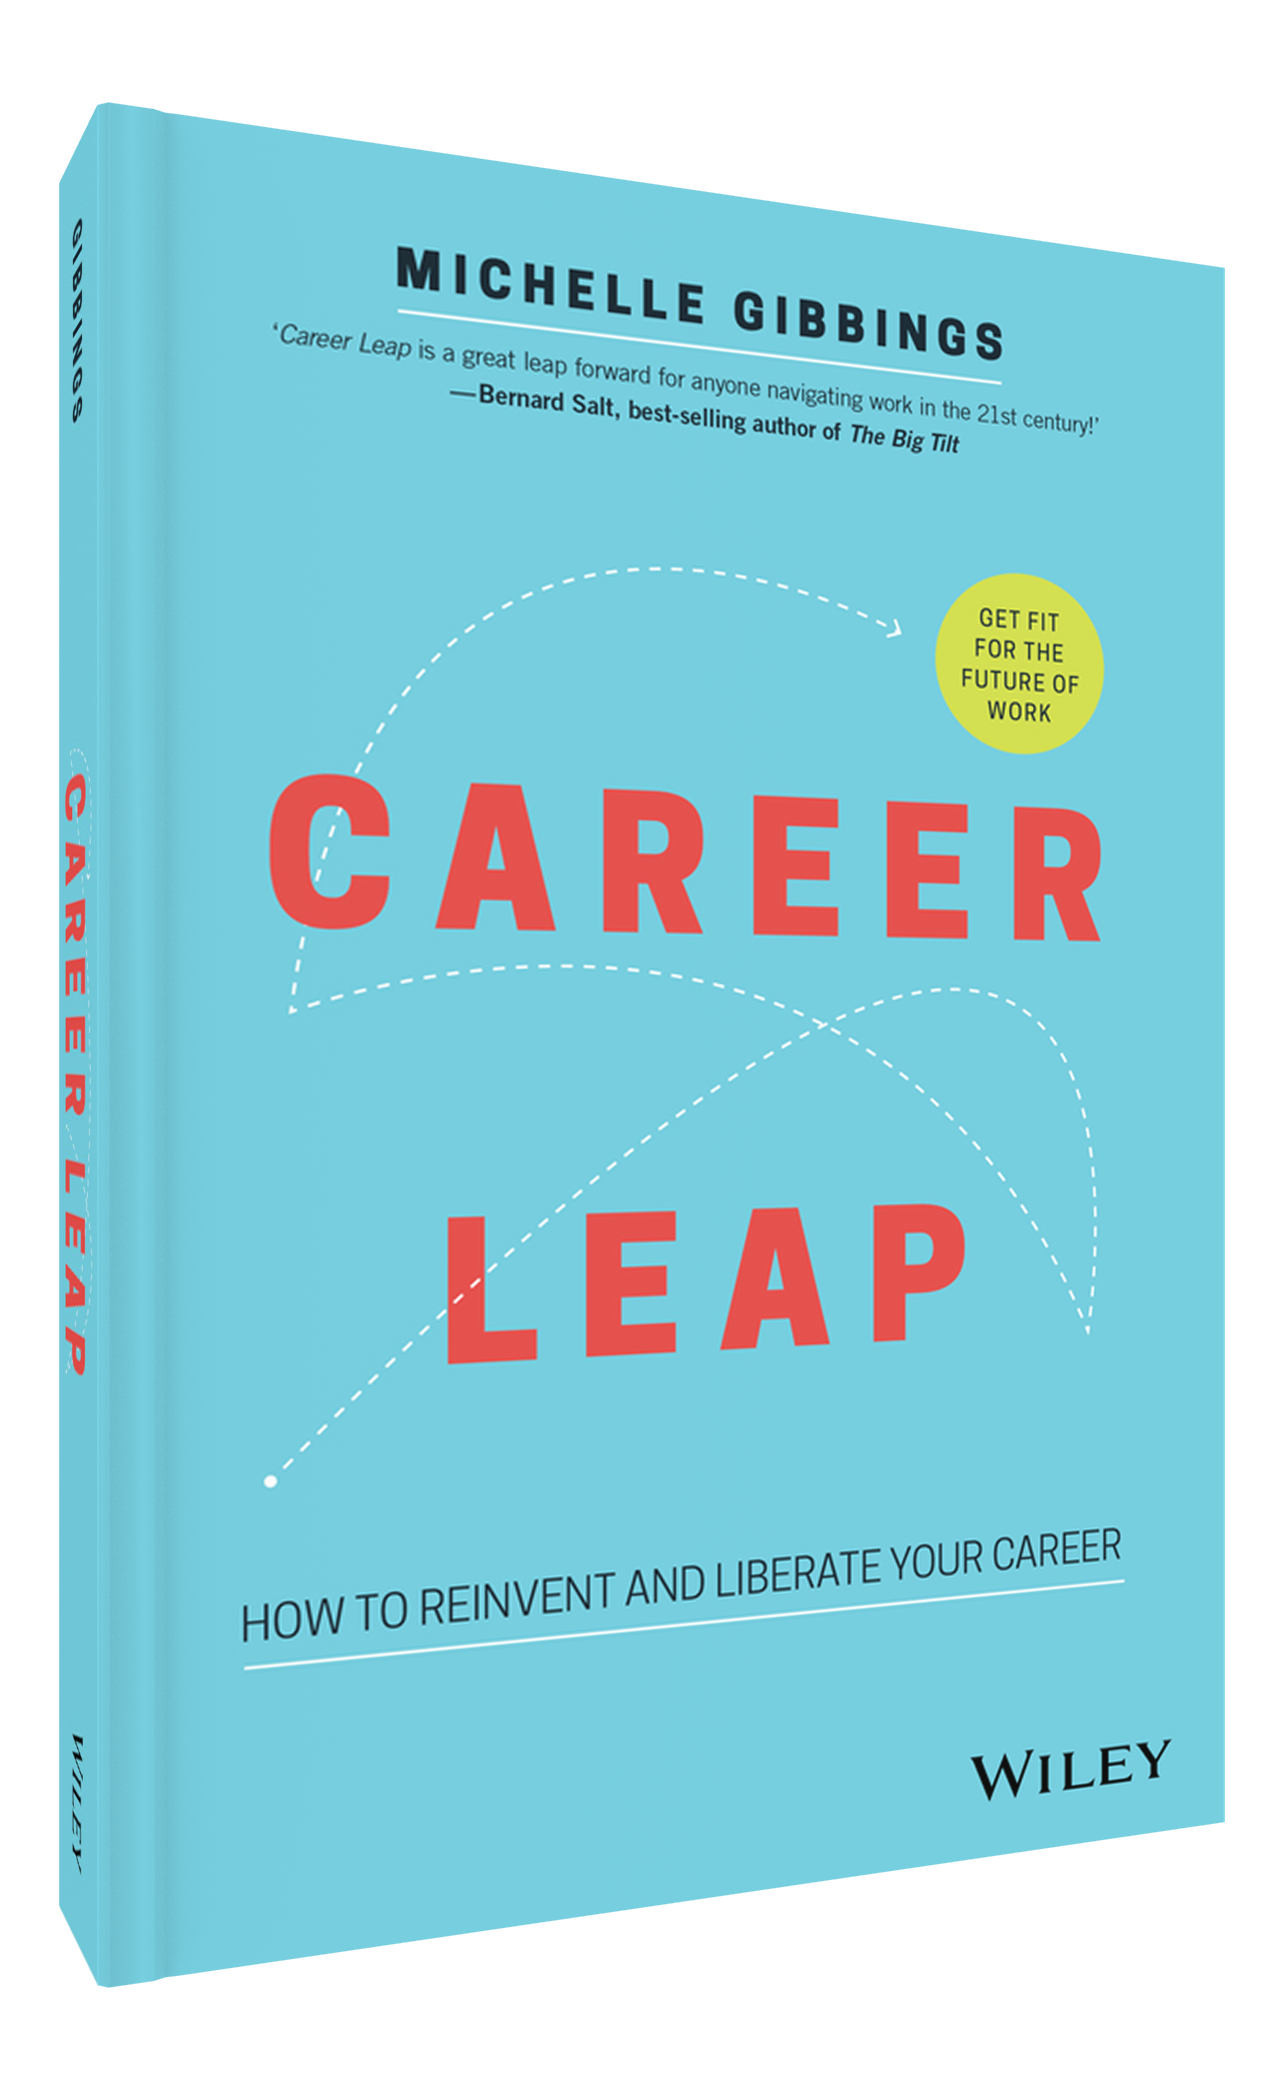 Career Leap - How to reinvent and liberate your career